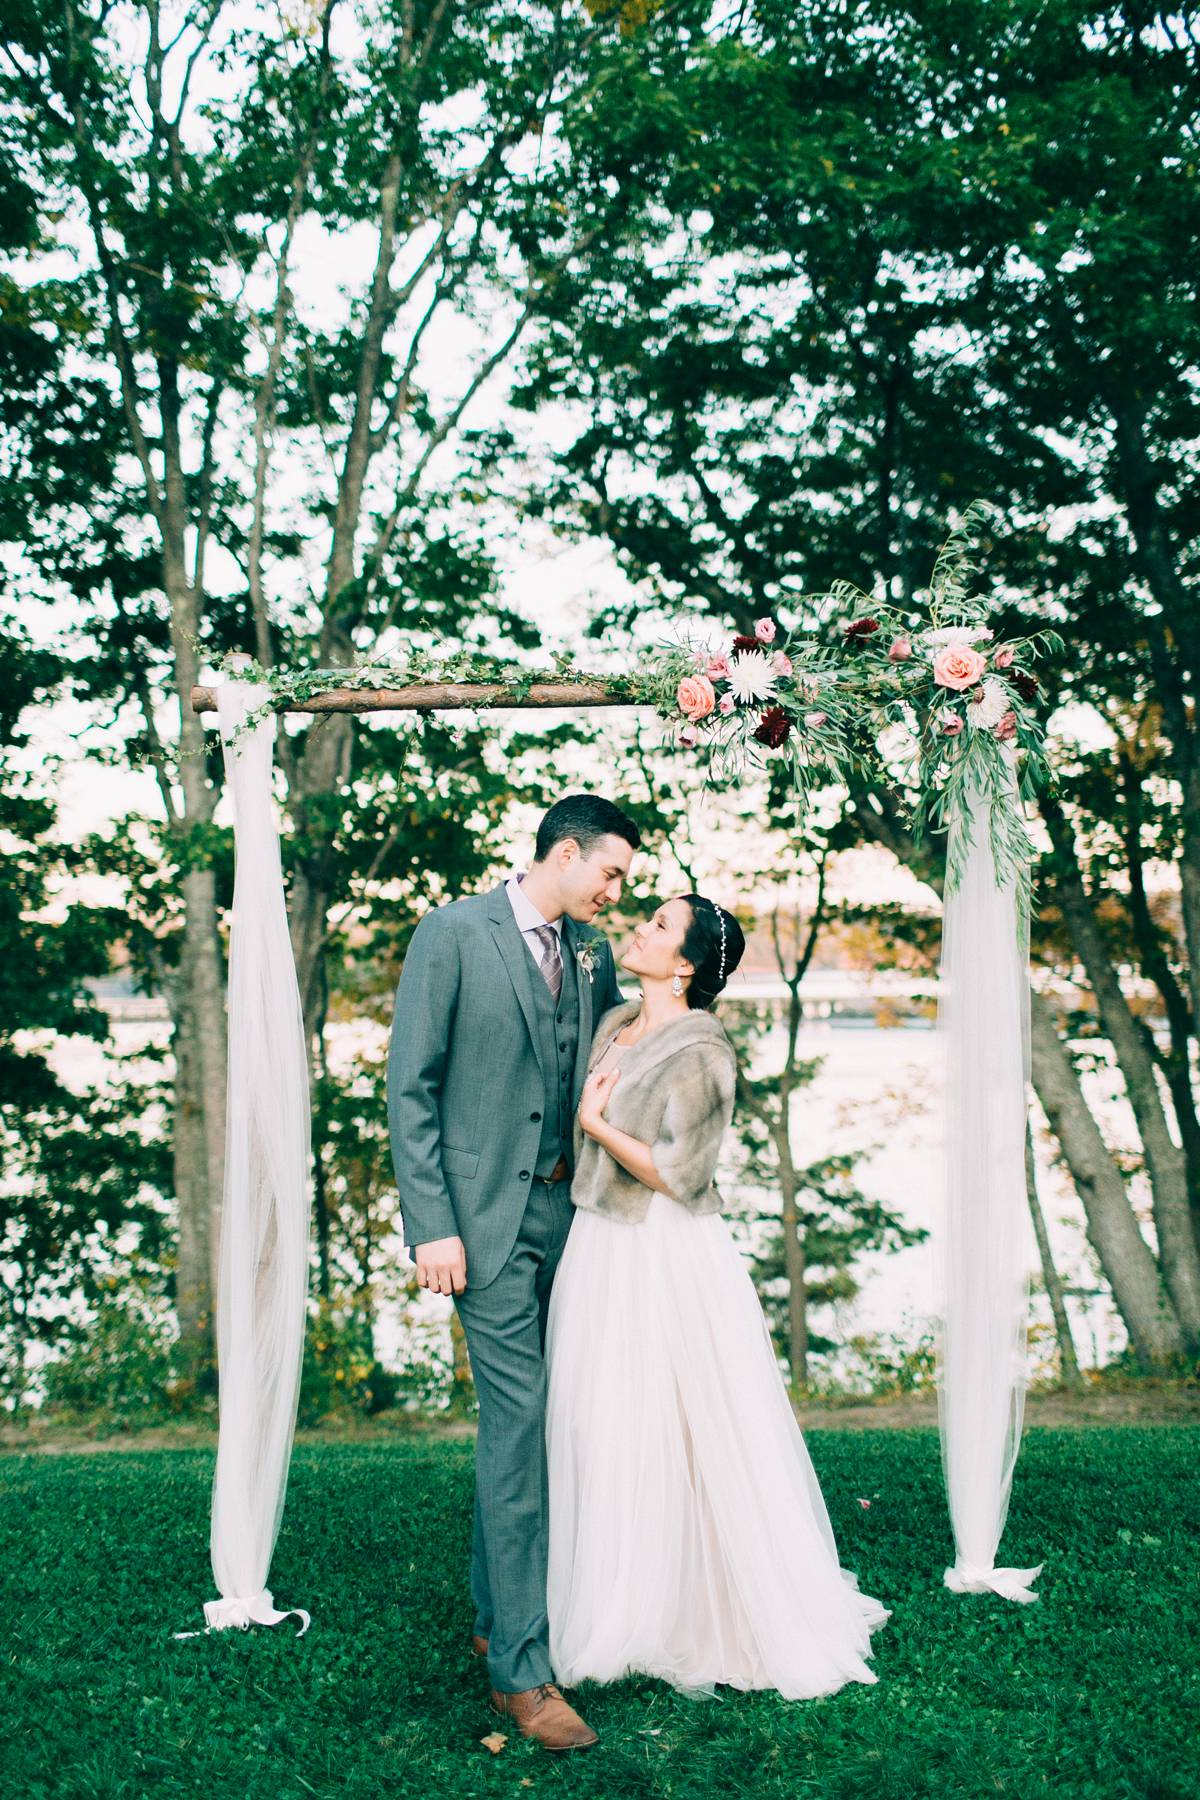 maine-wedding-34-08092015-ky